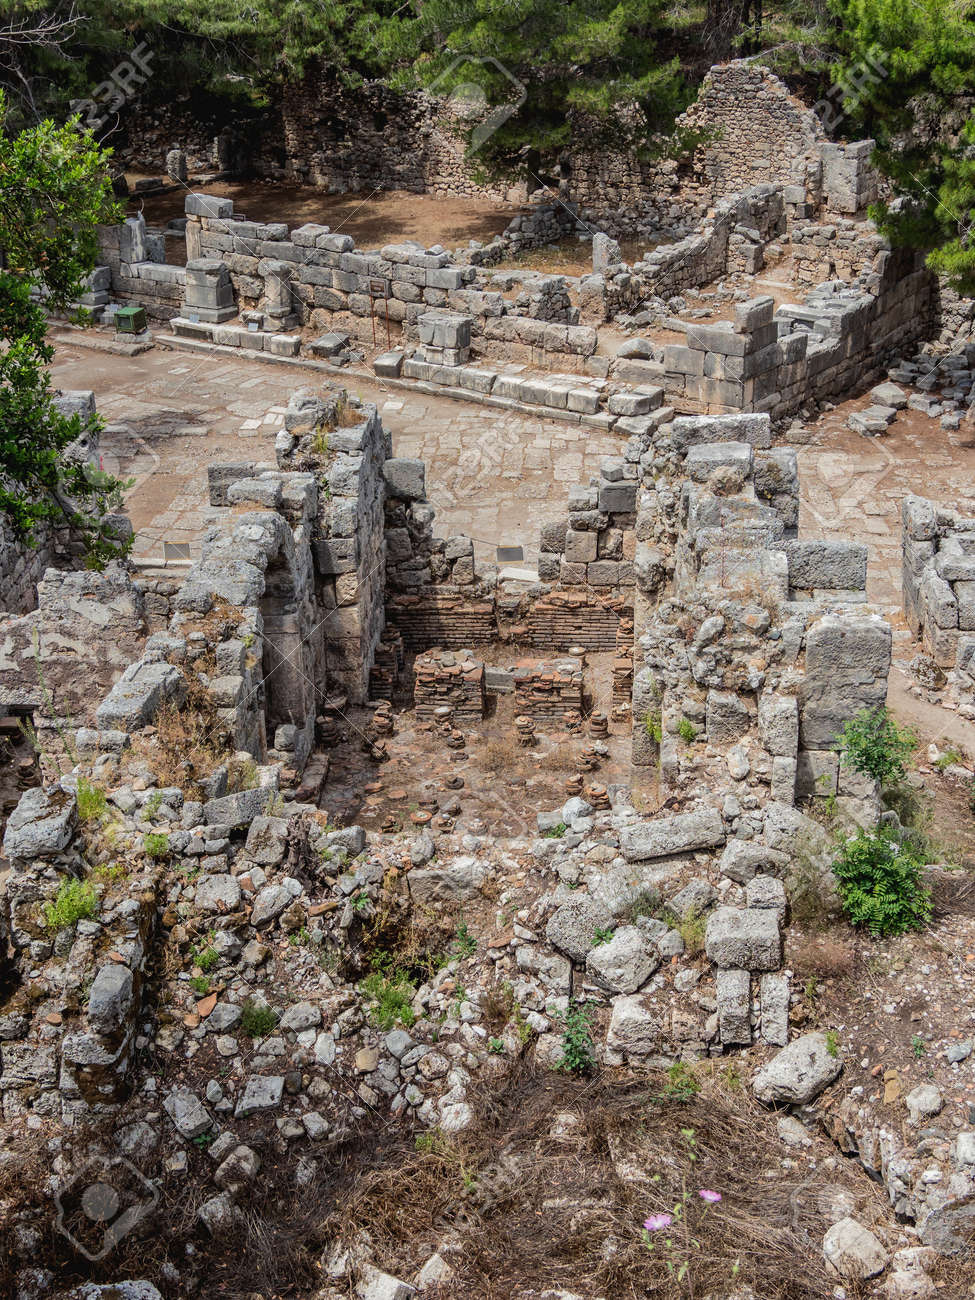 Ruins of large bath in ancient Phaselis city. Famous architectural landmark, Kemer district, Antalya province. Turkey. - 172806599